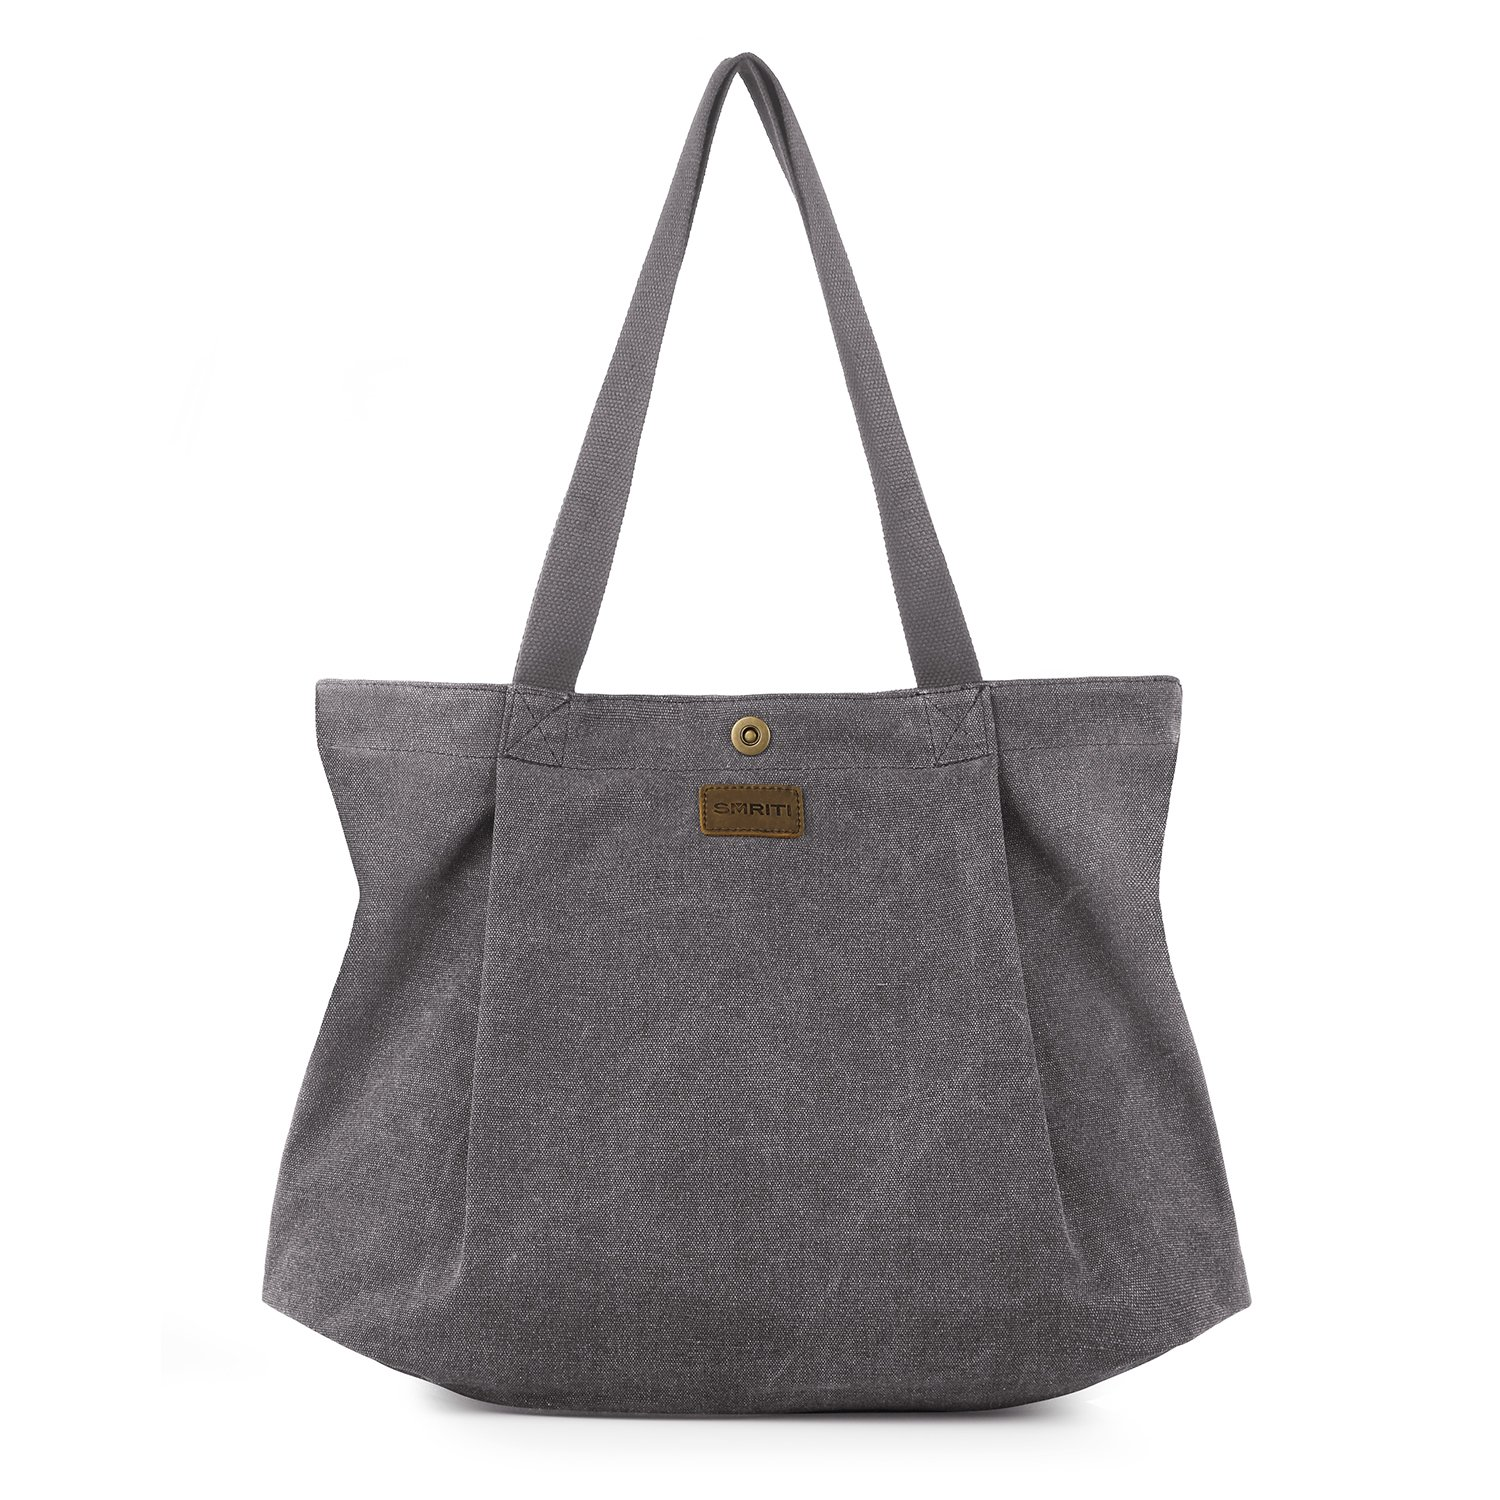 SMRITI Canvas Tote Bag for Women School Work Travel and Shopping (2 Light grey) by SMRITI